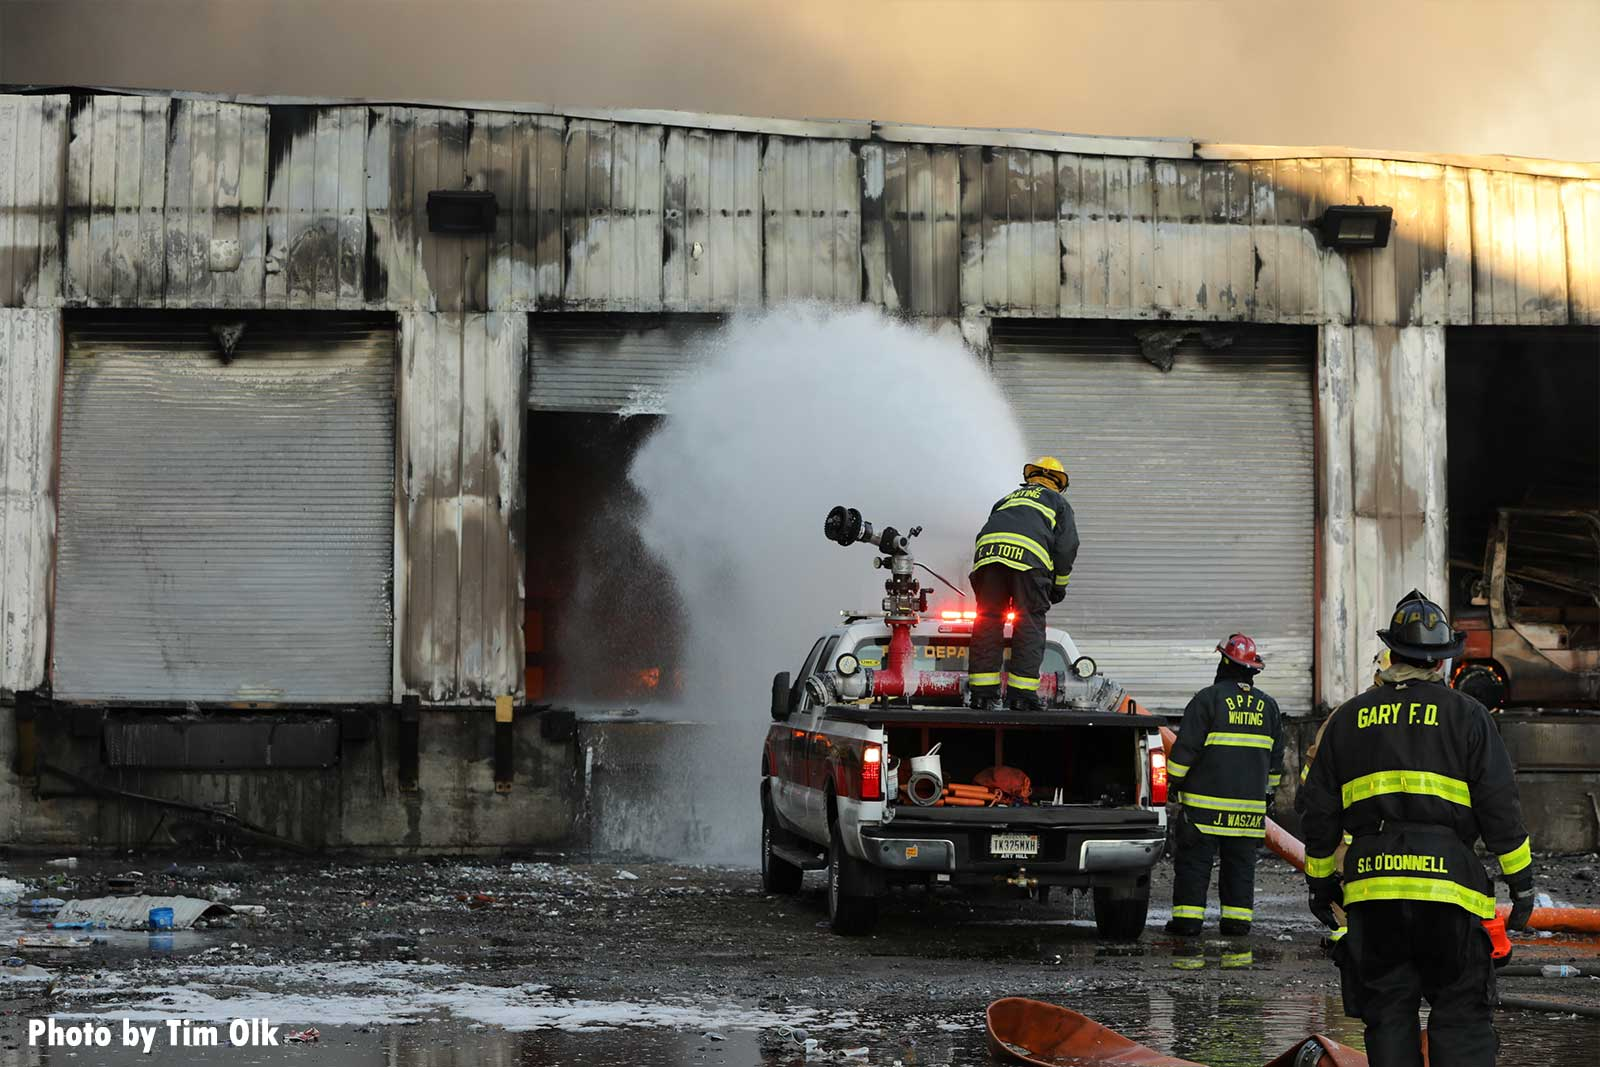 Firefighter uses cannon to blast foam into building